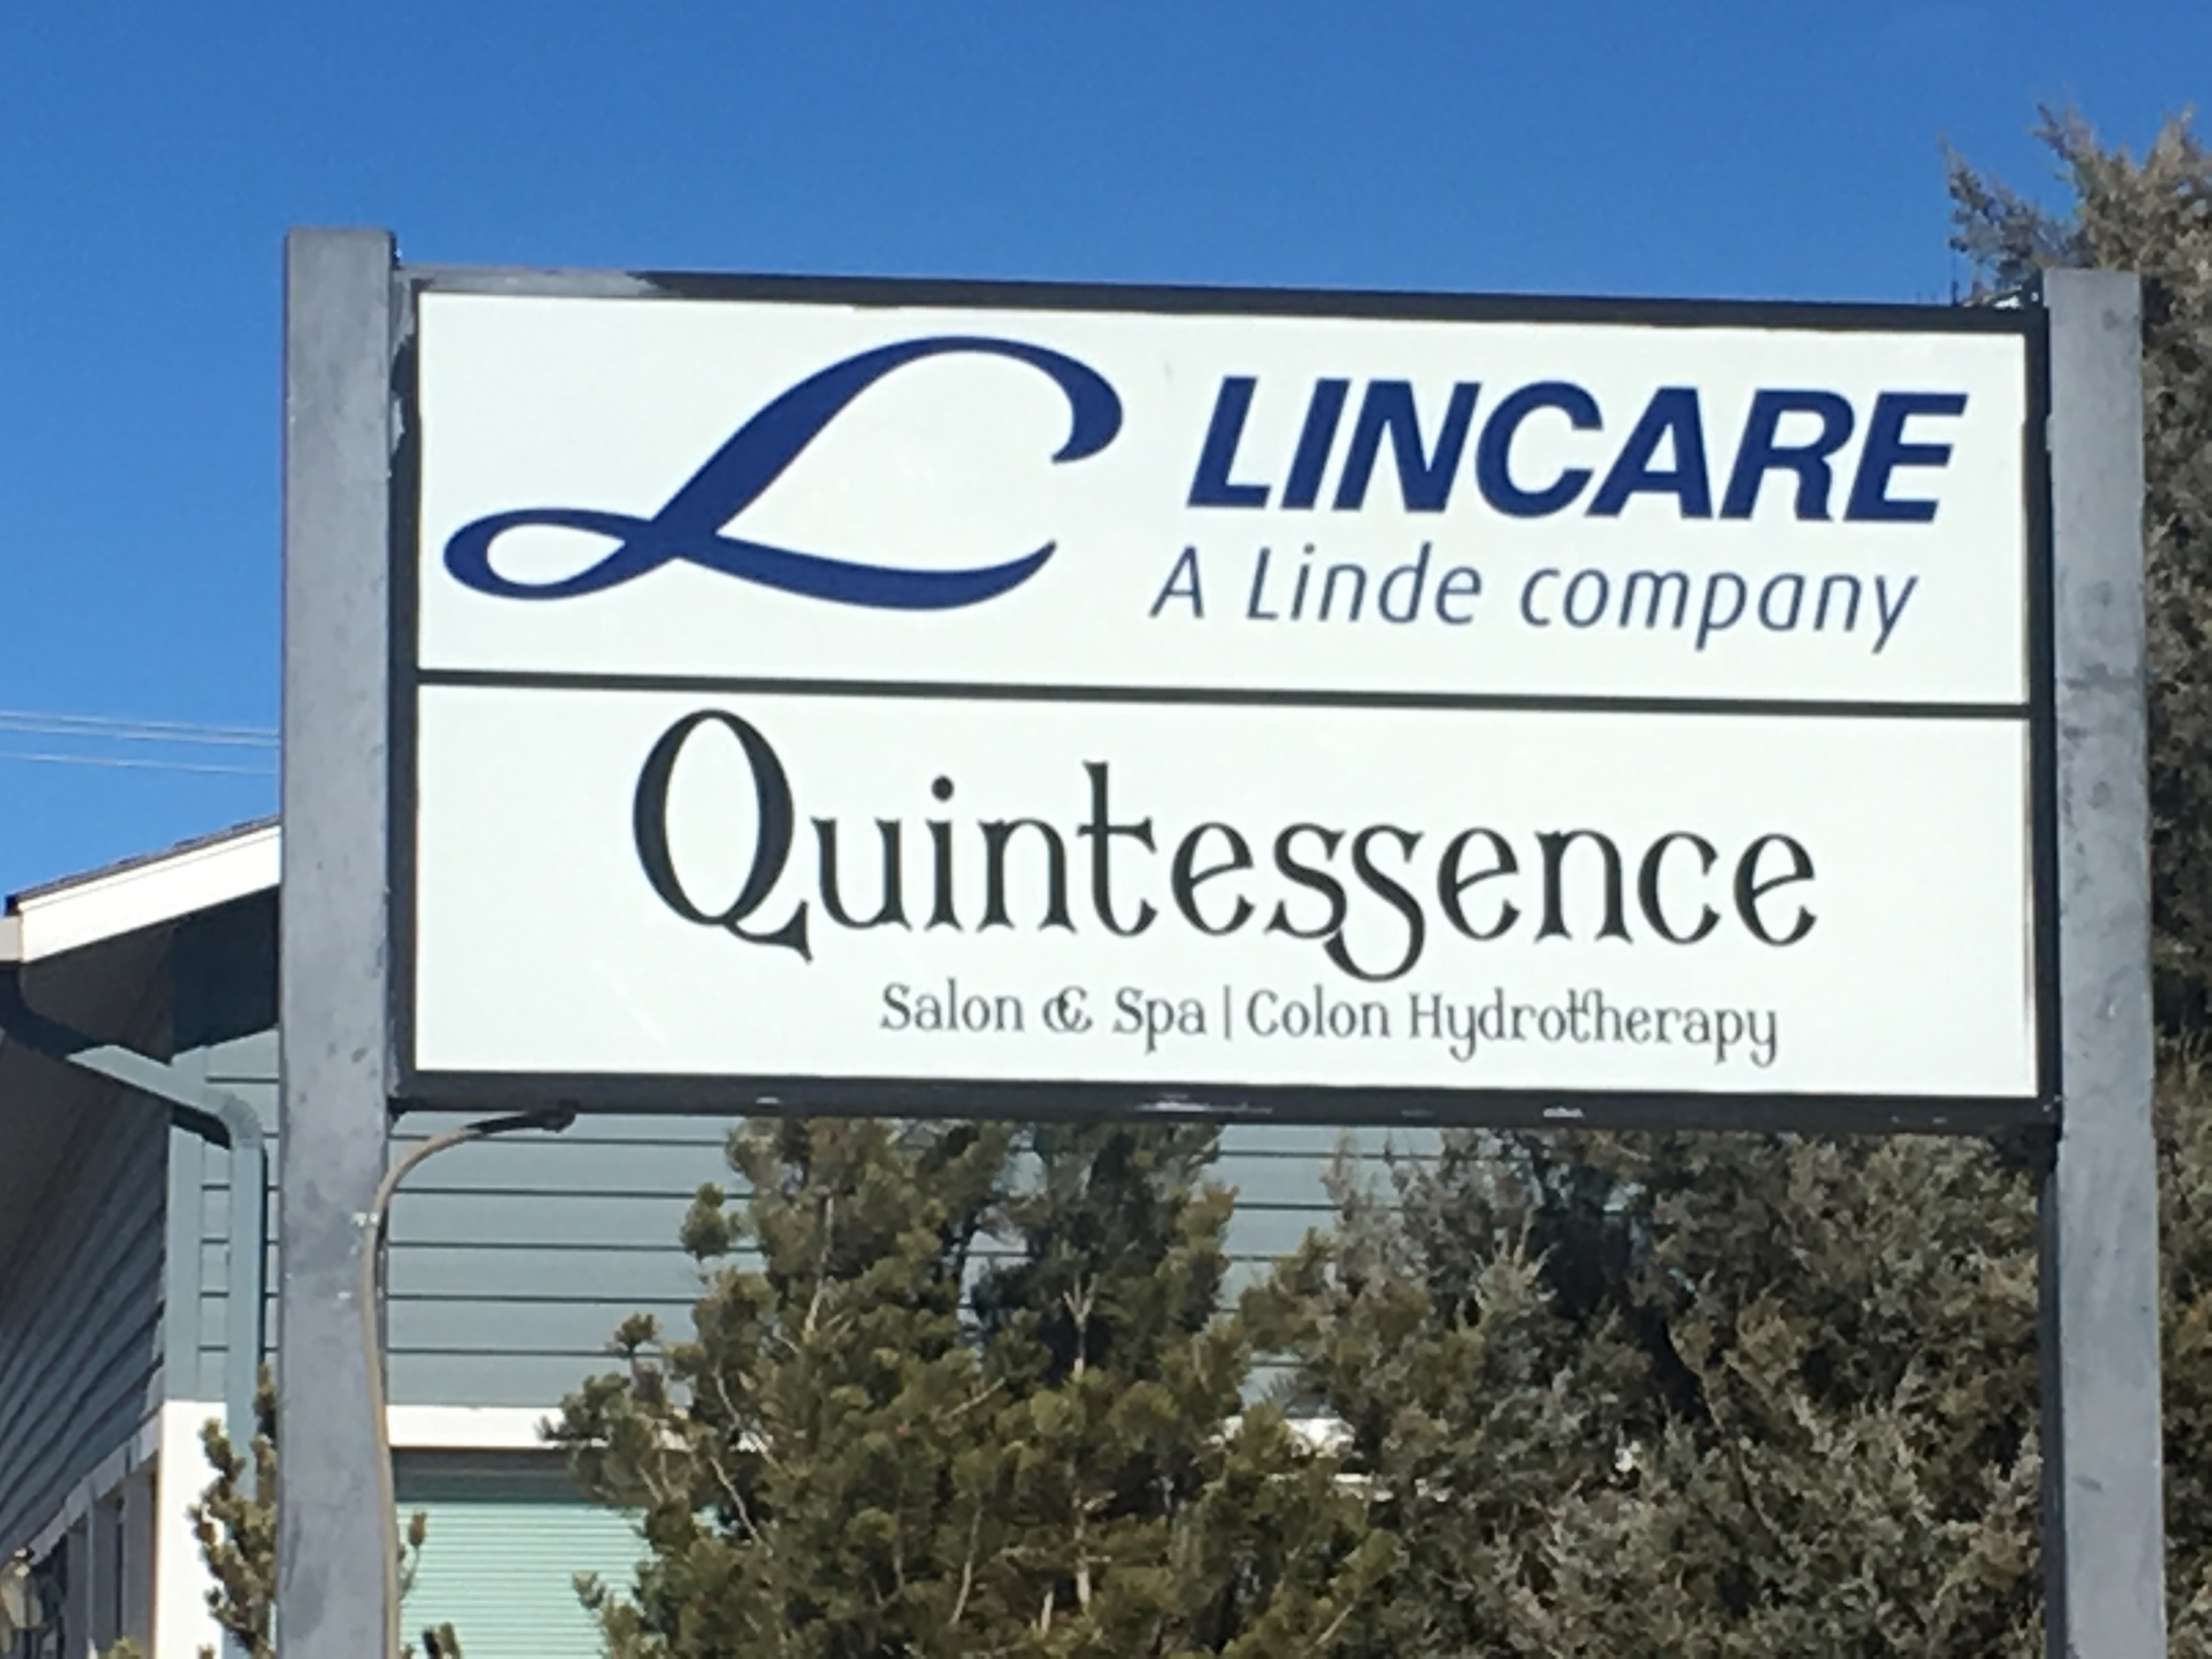 Because you never know where you might find the Quintessence of Life. Colon Hydrotherapy included.